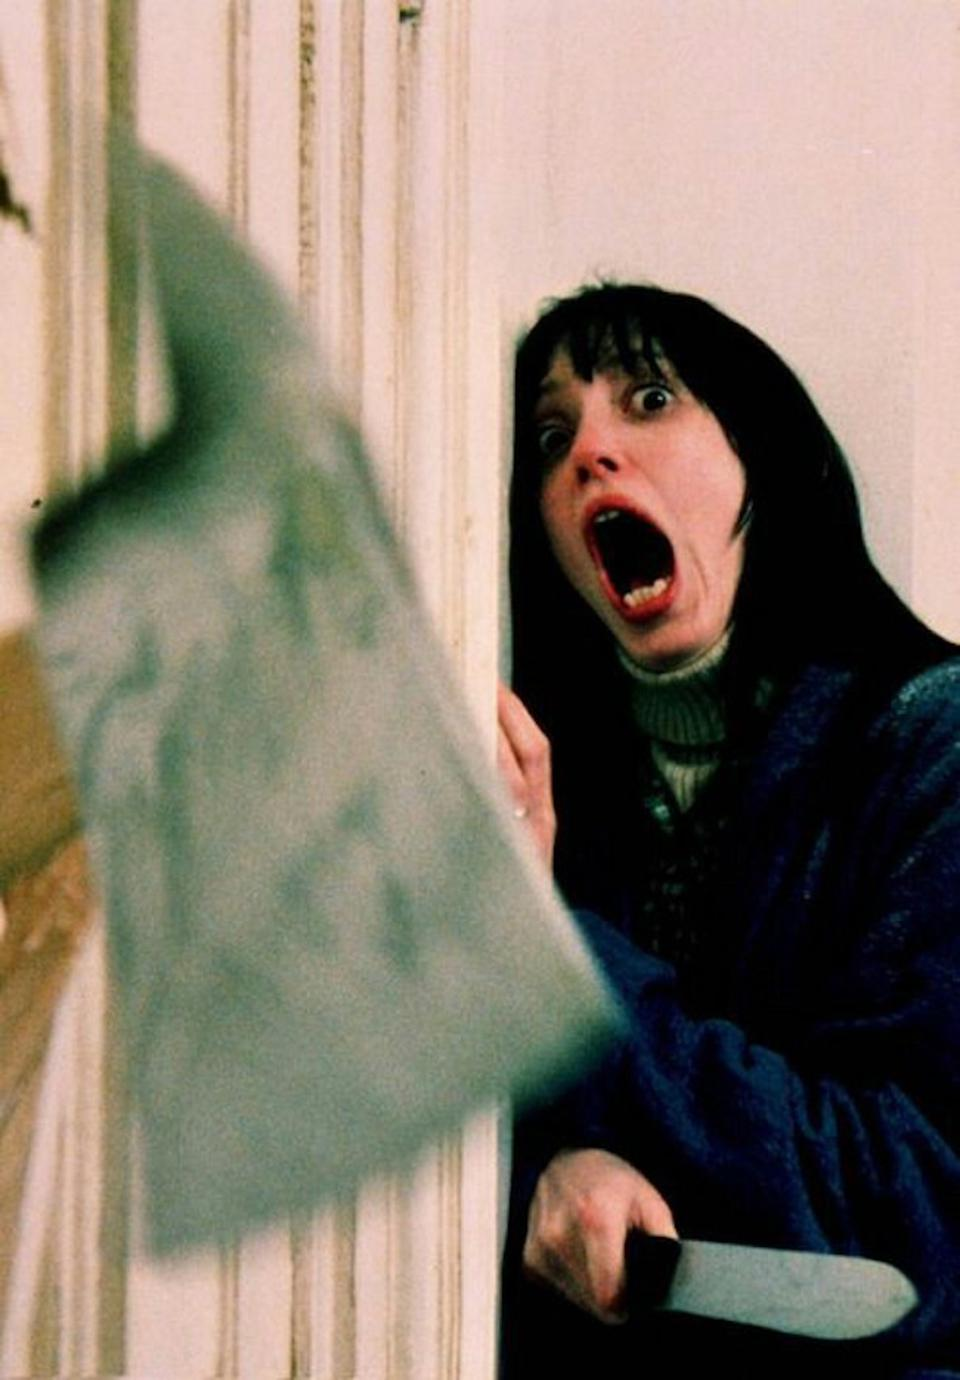 Shelley Duvall pushed to her limits in The Shining.